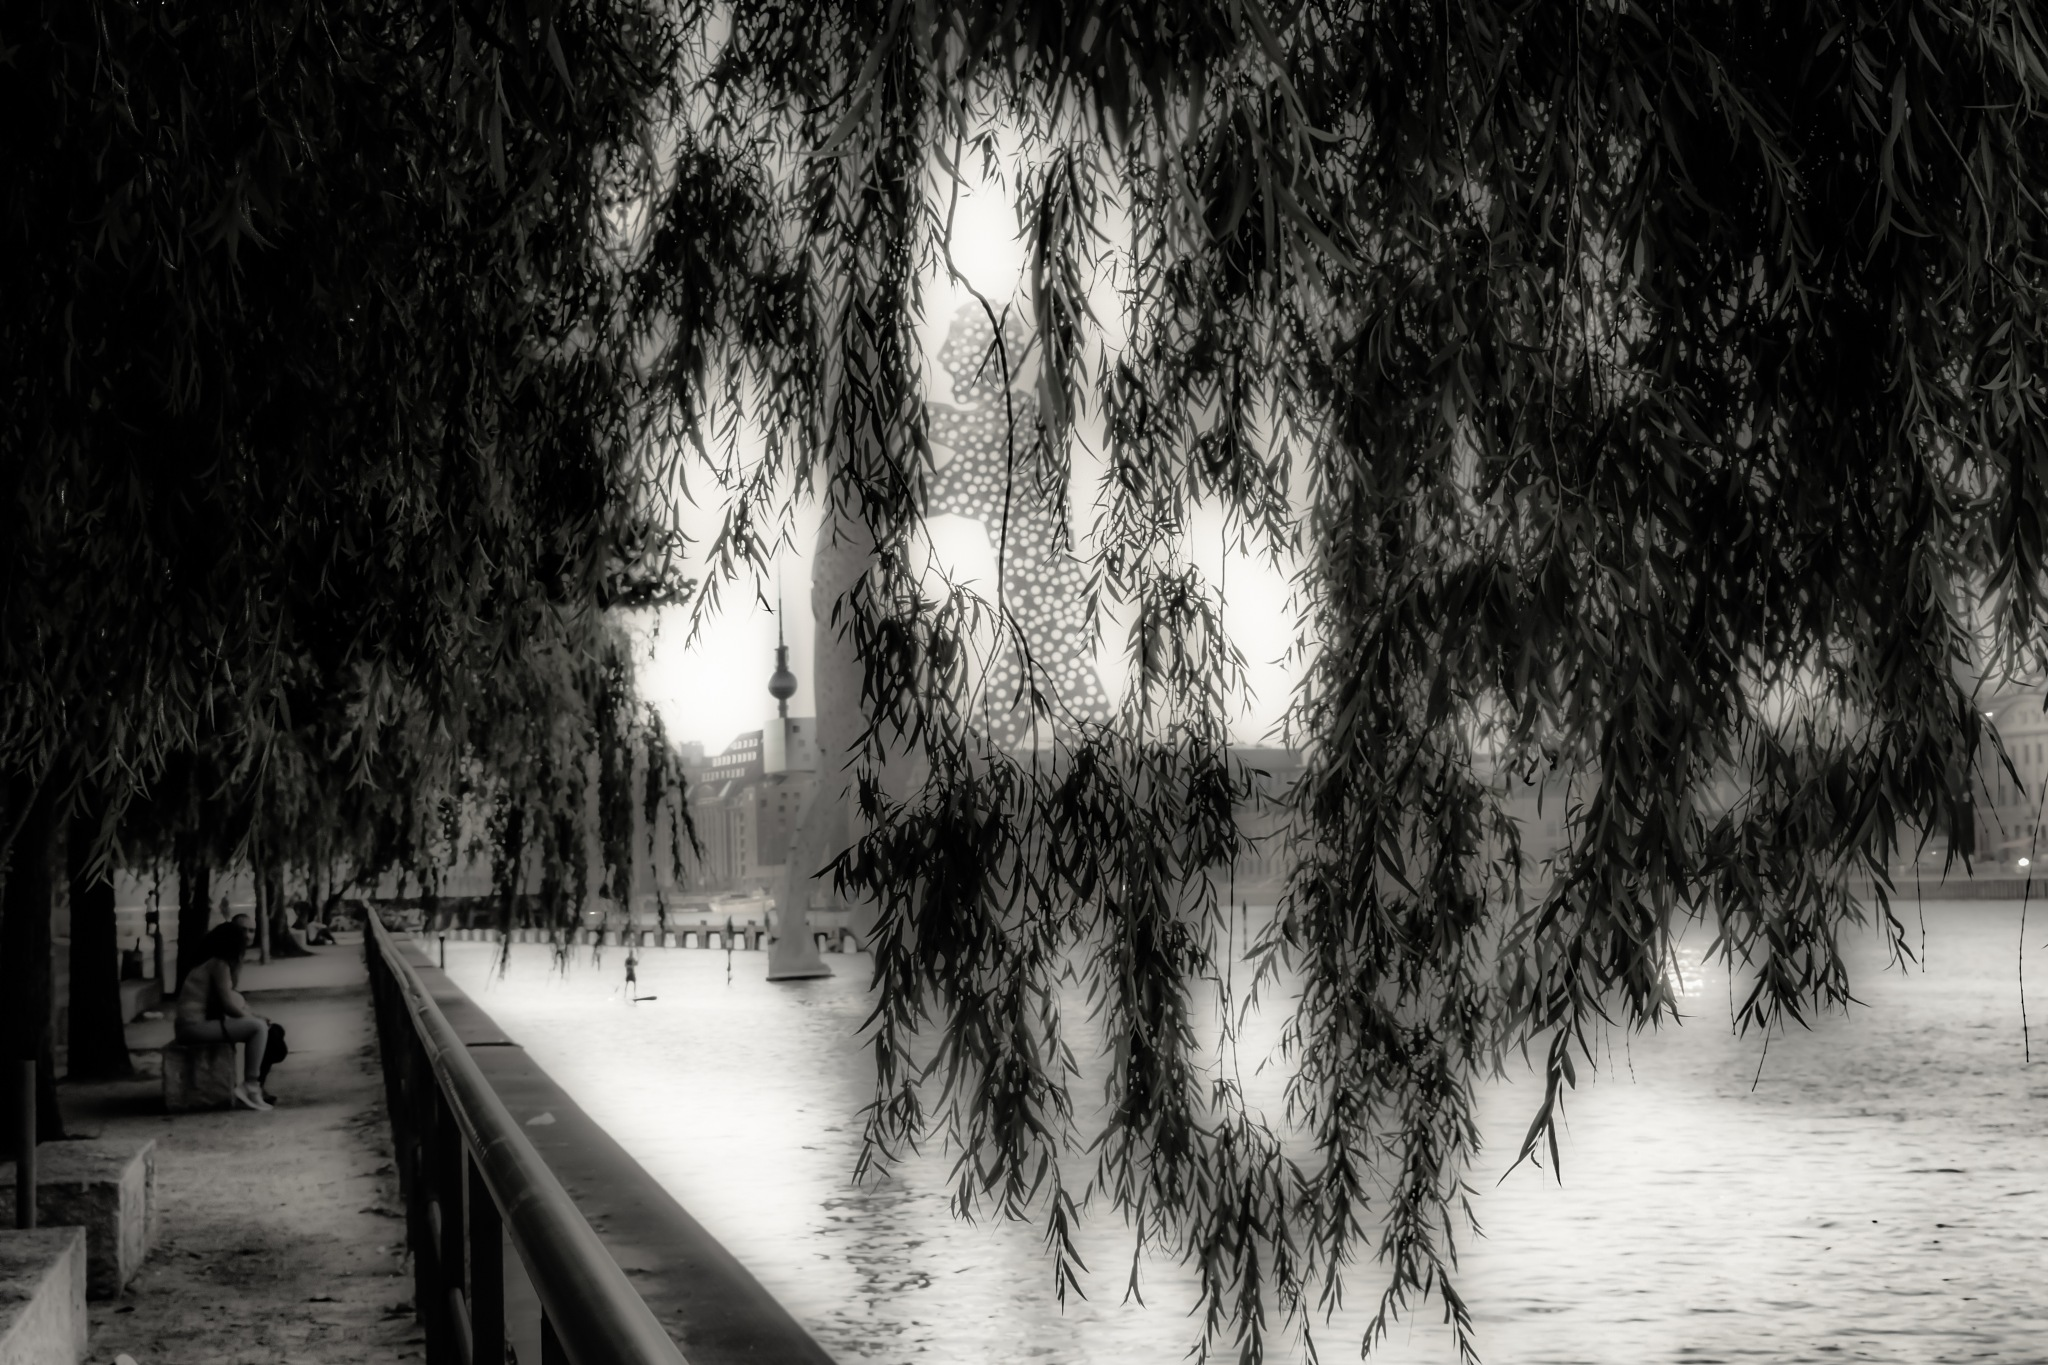 ... under the weeping willow ...  by Johannes Hauser